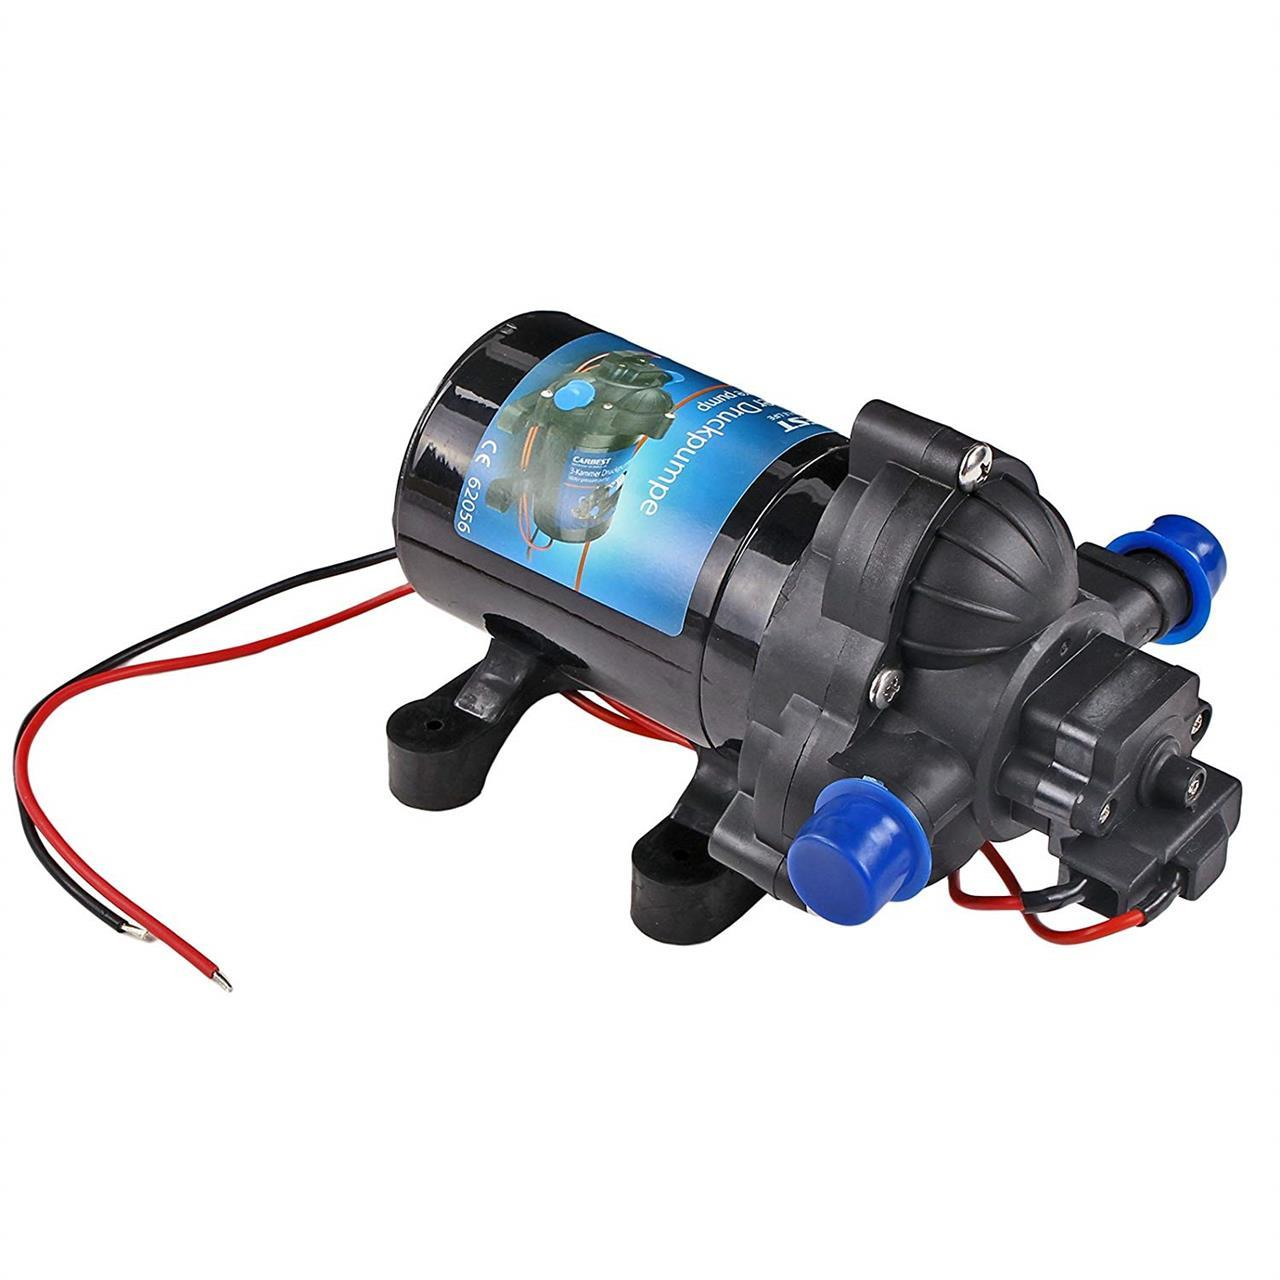 Tryckvattenpump 10 l/min, 2,8 bar